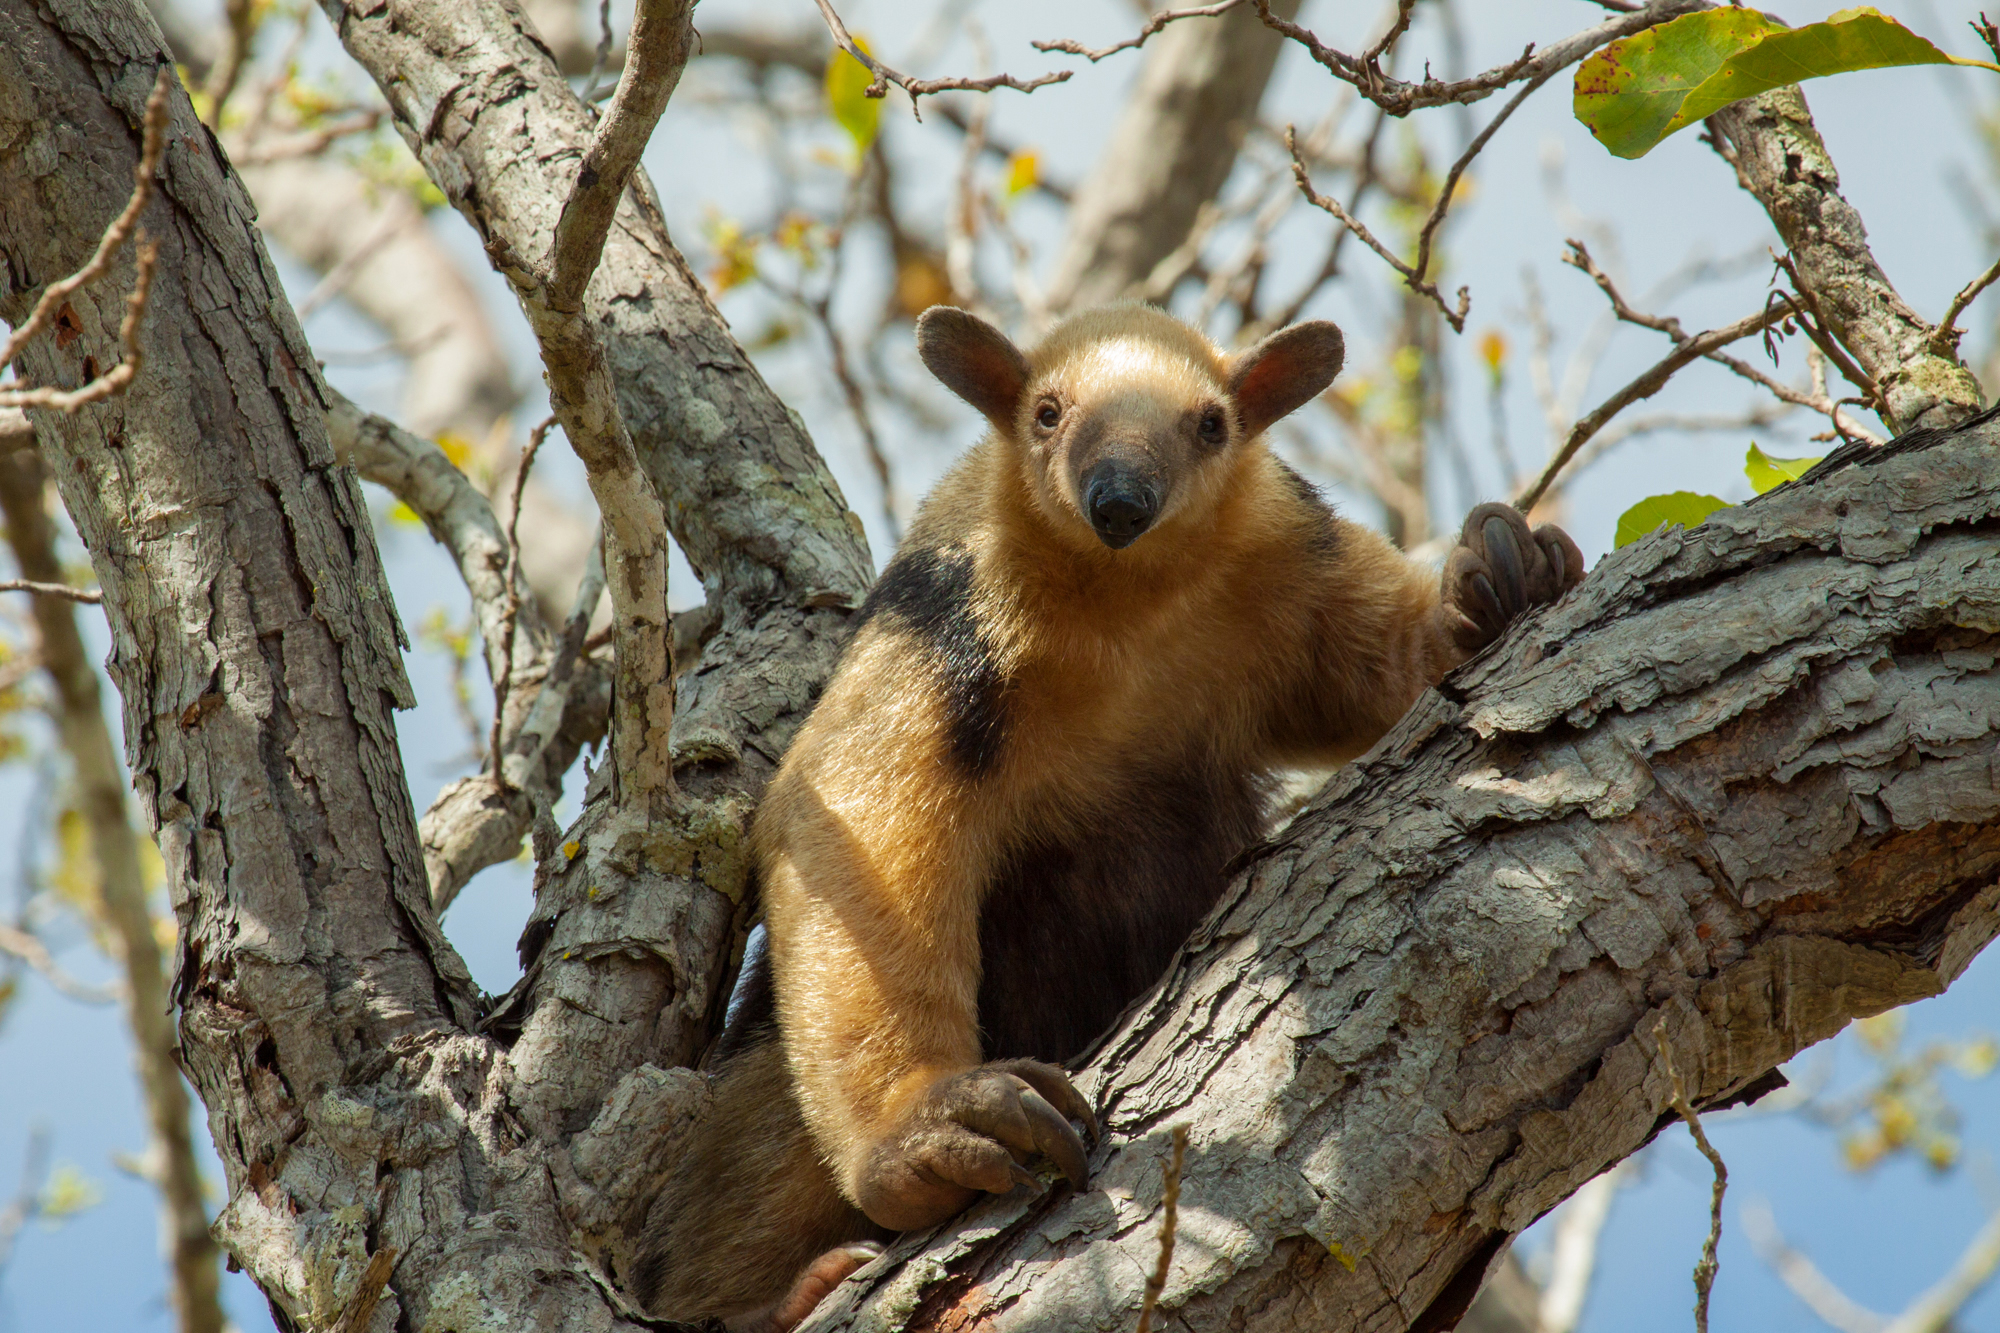 NORTHERN TAMANDUA (T. mexicana)